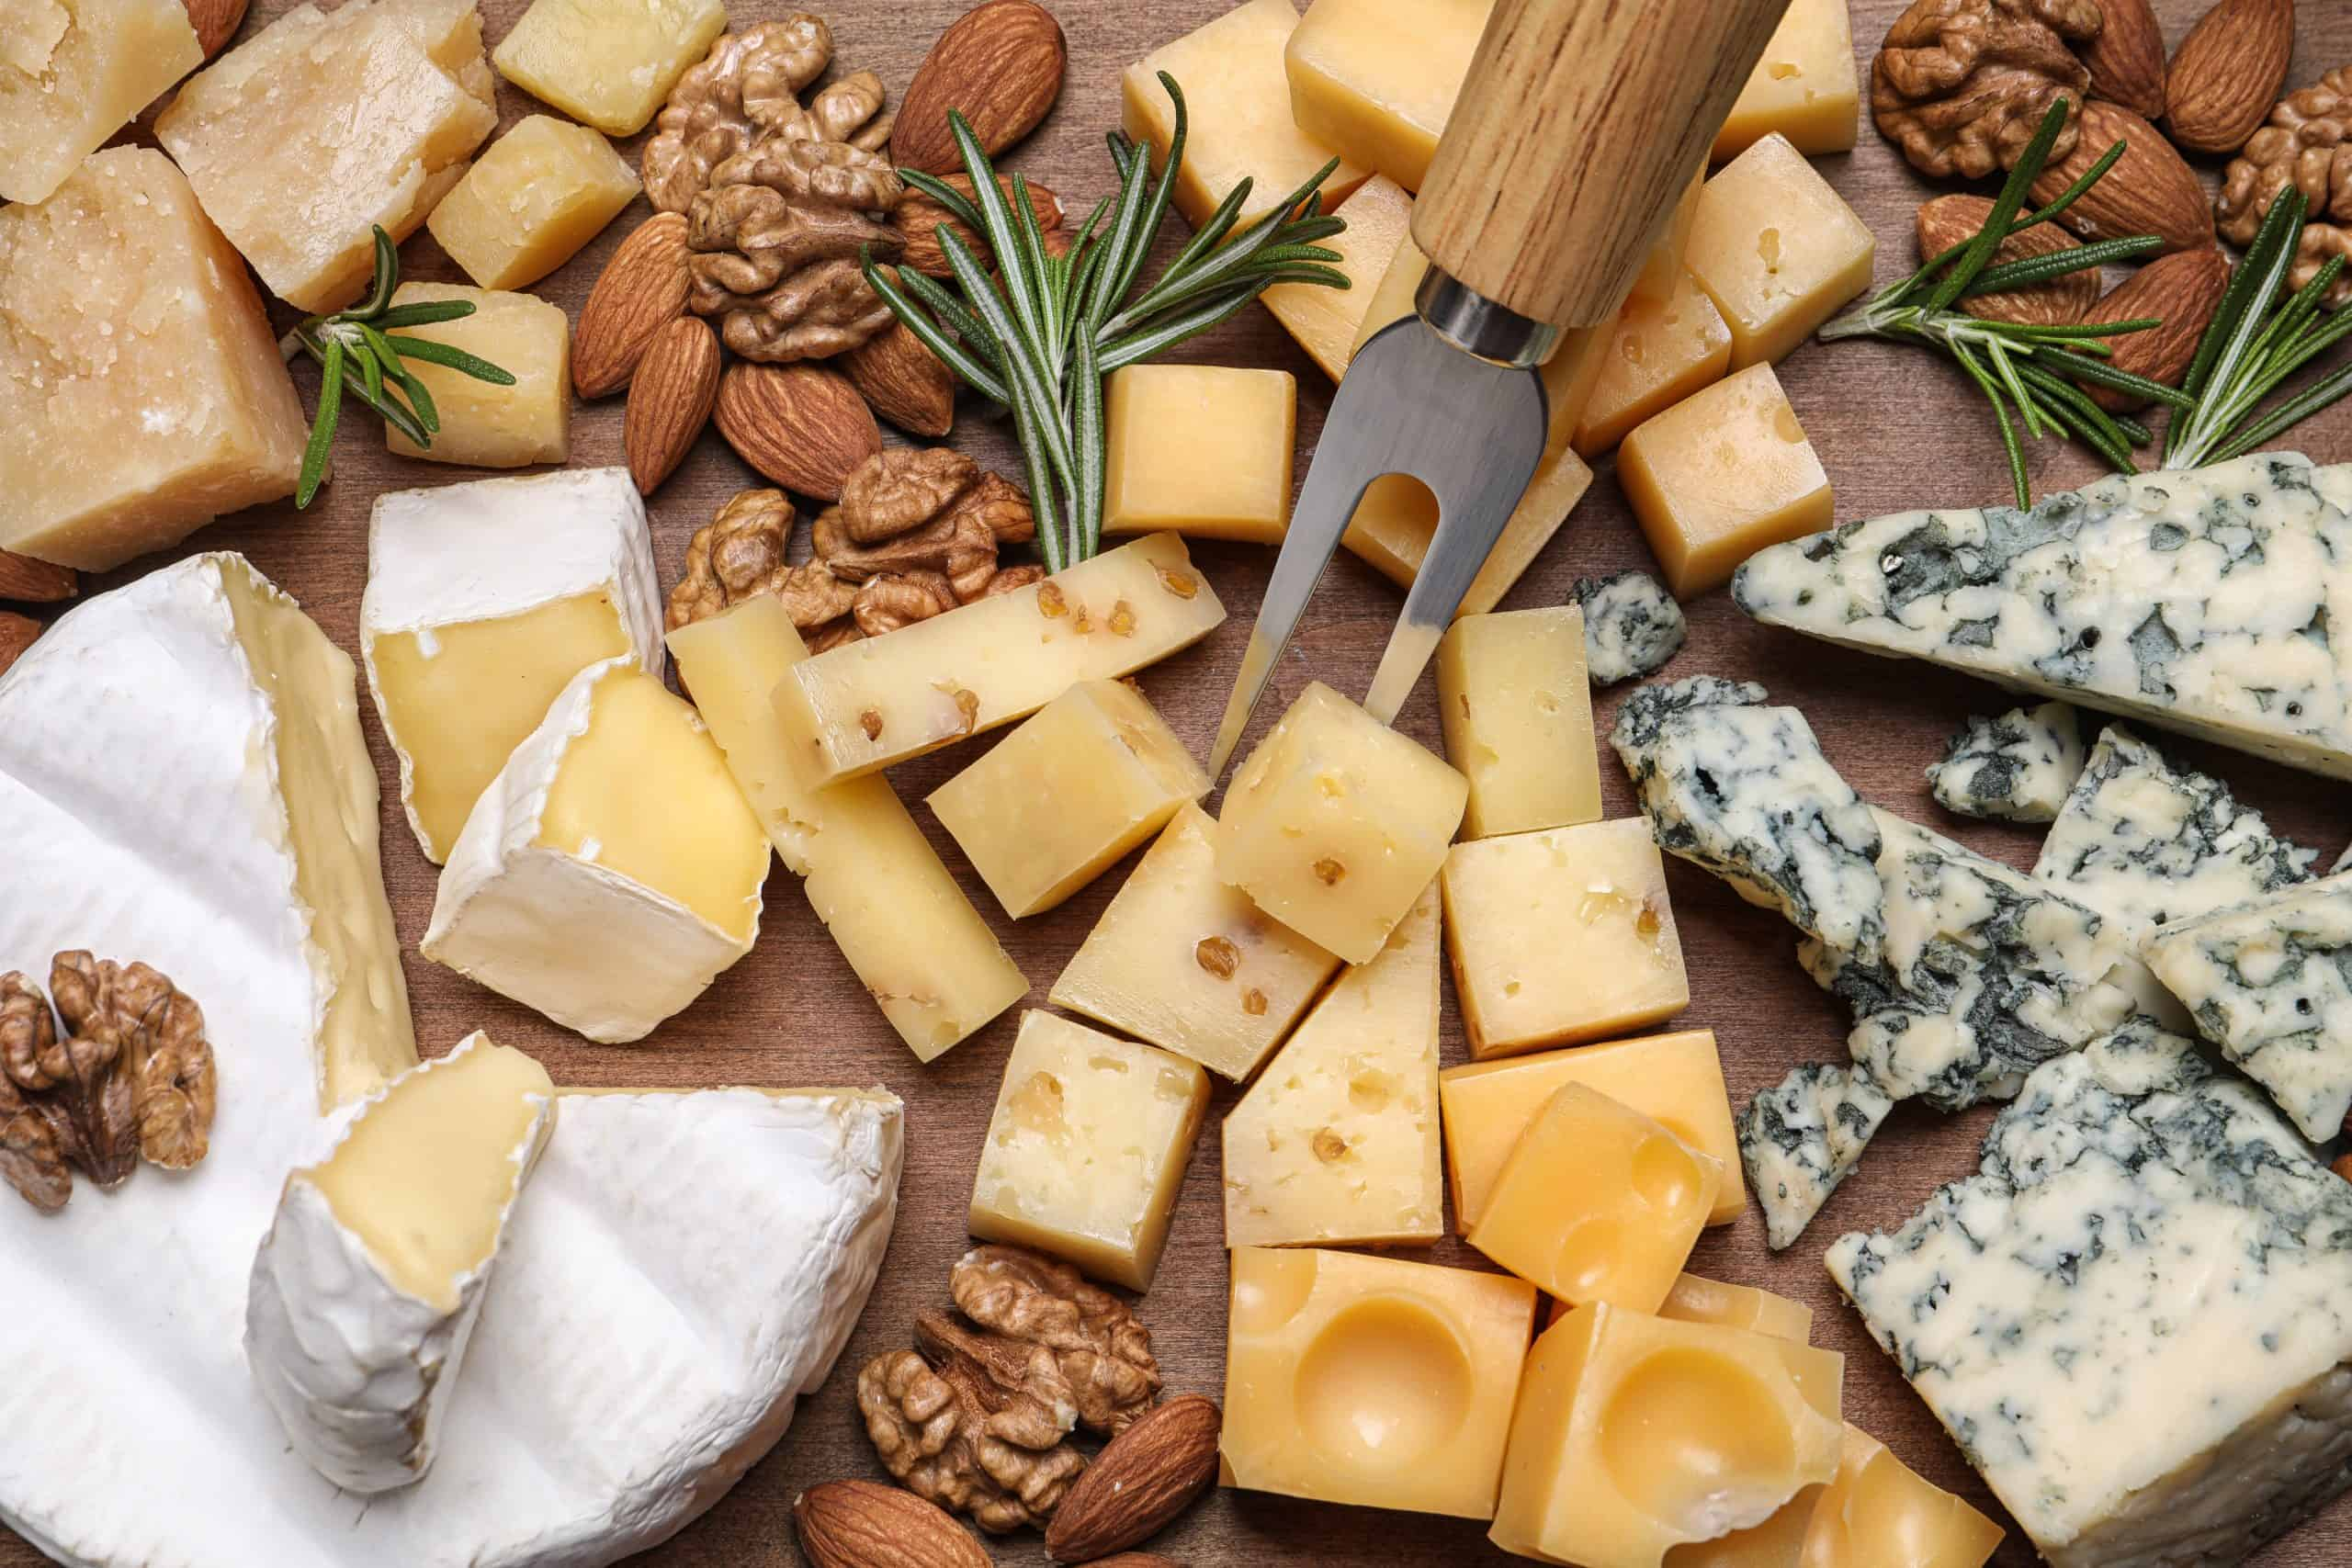 Cheese plate with rosemary and nuts on wooden board, top view